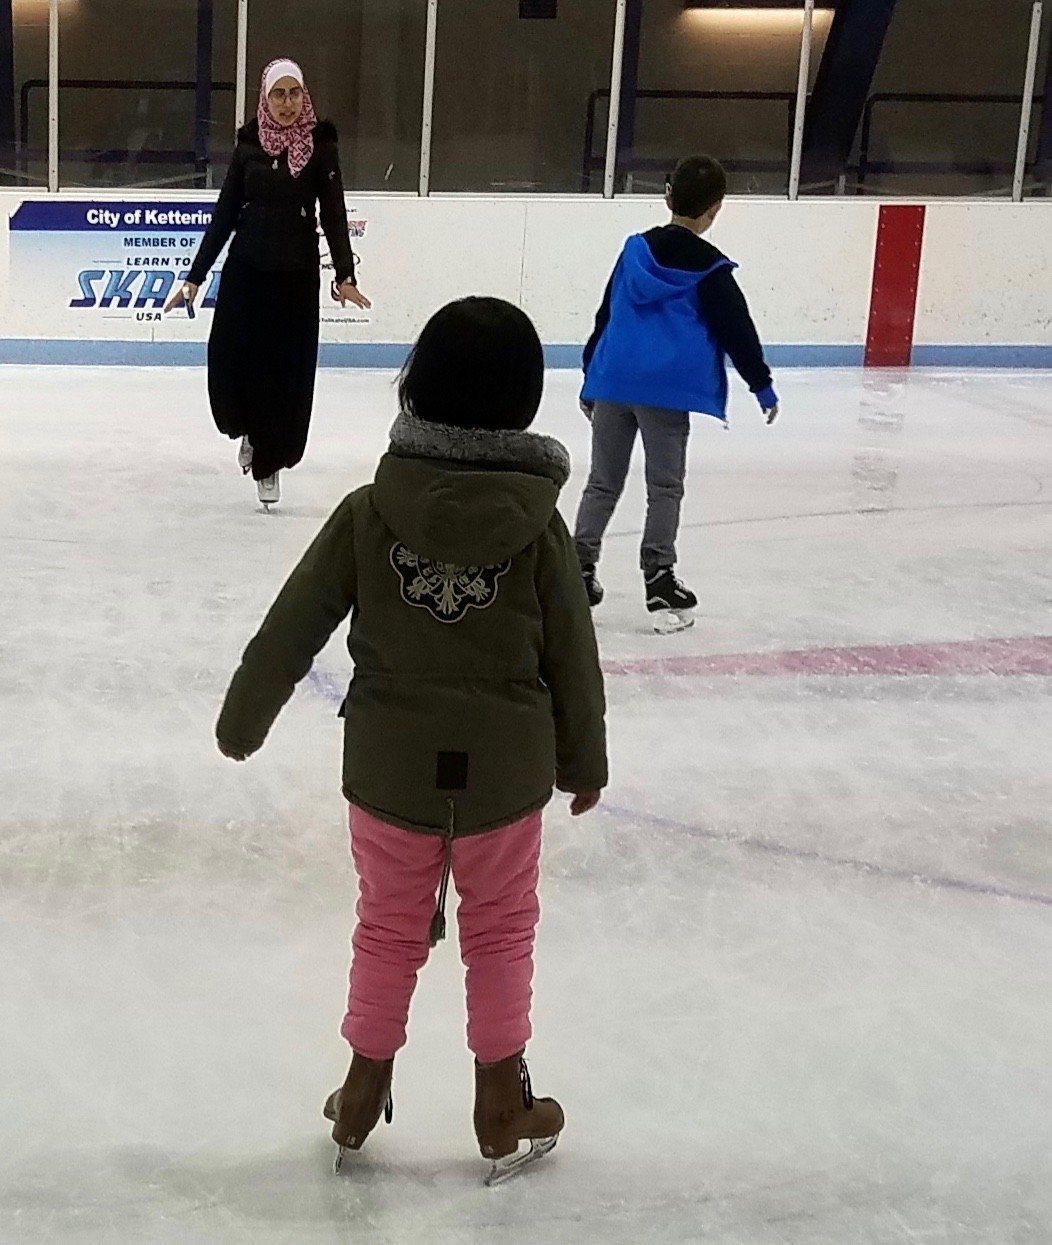 Mariam Elgafy stands on the ice in a skating area teaching young children figure skating.